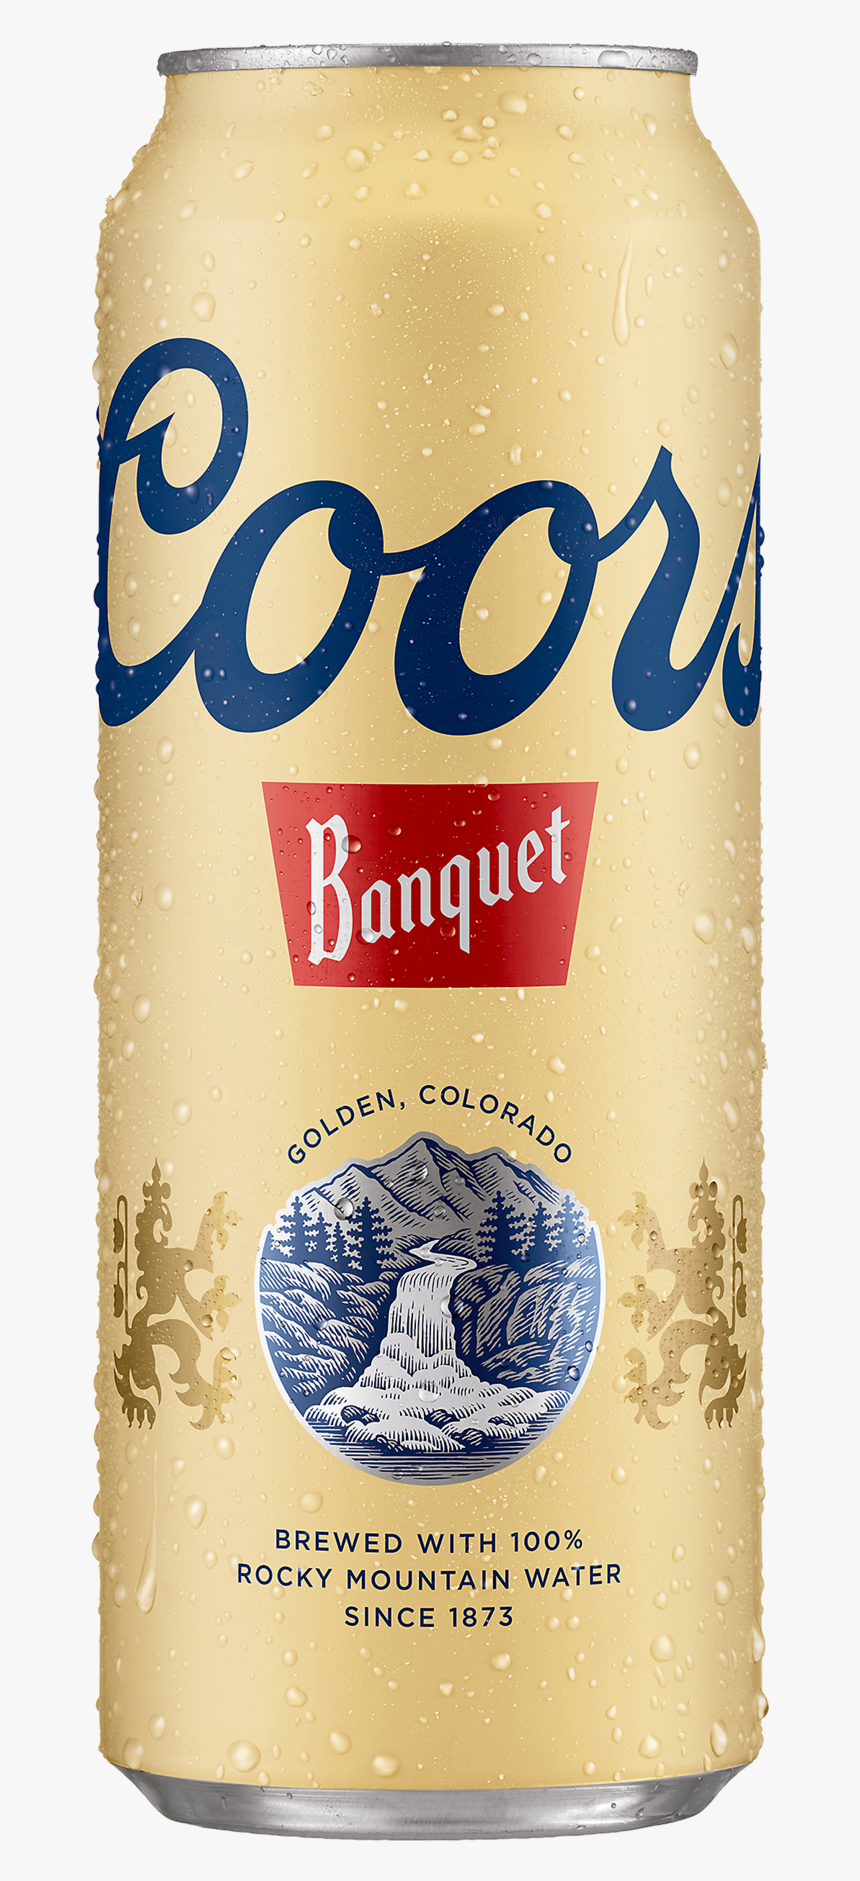 Coors Banquet 24 Oz Can, HD Png Download, Free Download